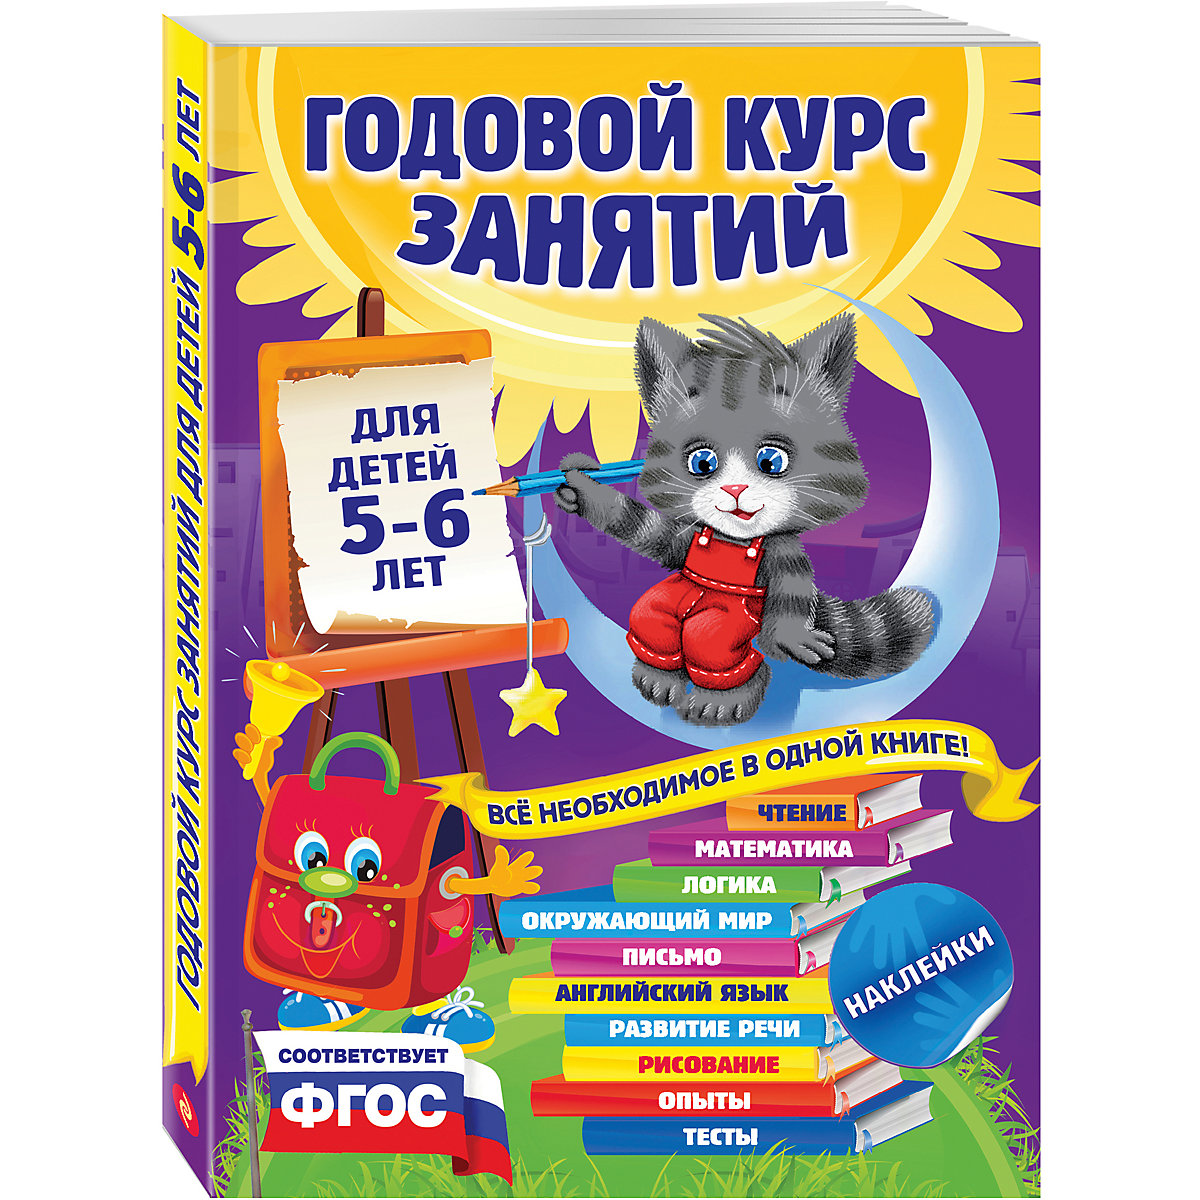 Books EKSMO 4355900 Children Education Encyclopedia Alphabet Dictionary Book For Baby MTpromo